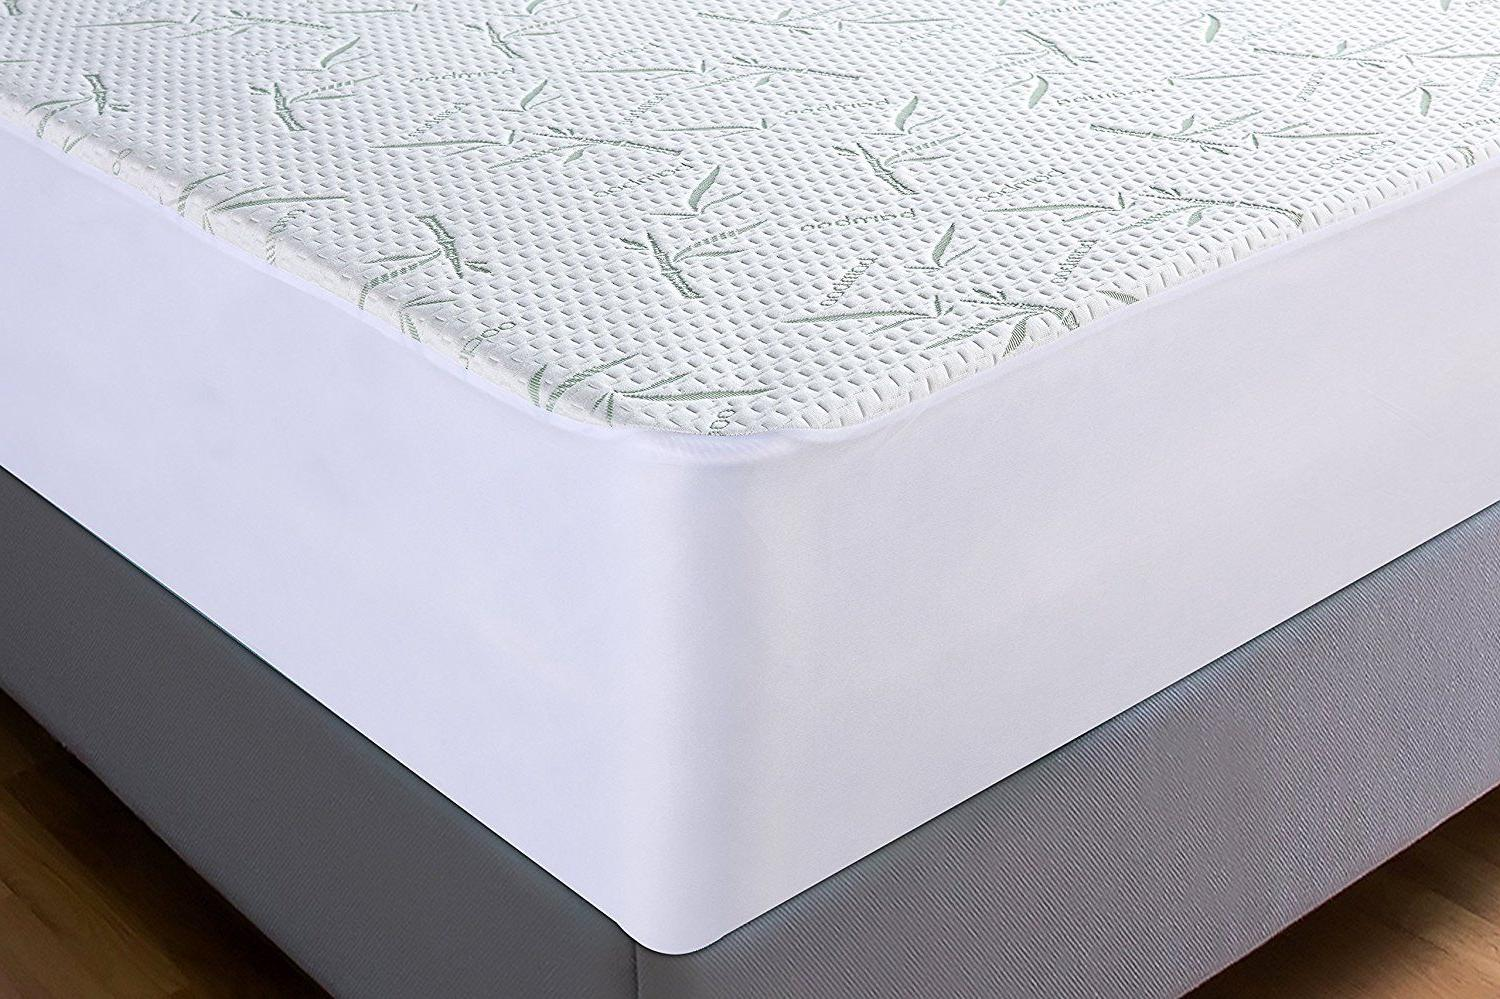 BAMBOO Mattress Protector Soft Hypoallergenic Cover Pad